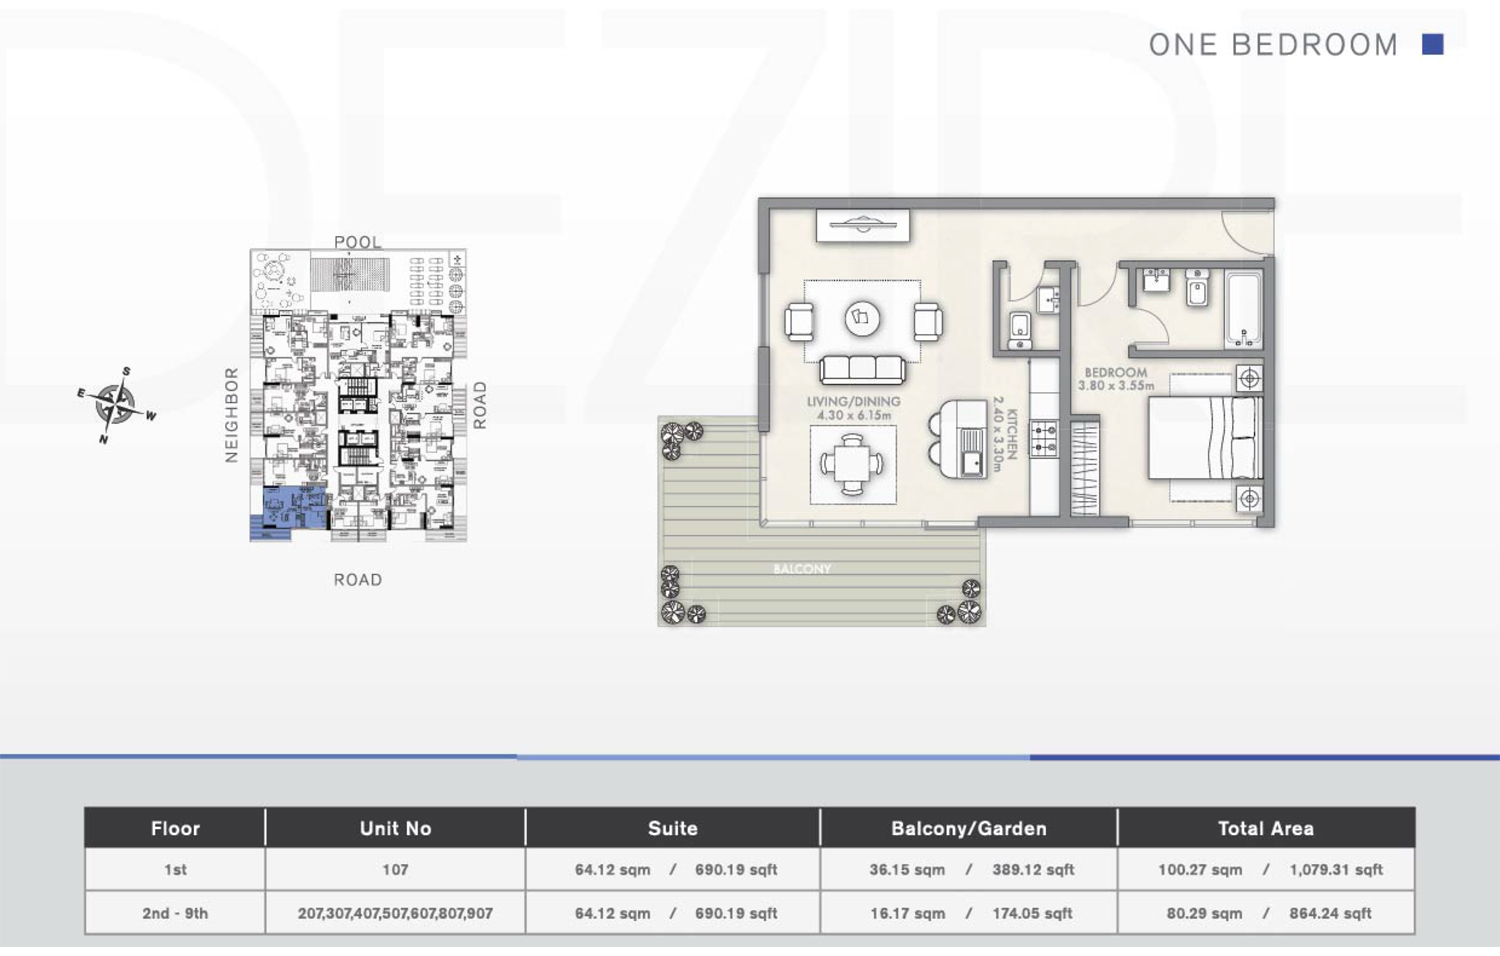 1 Bedroom Floor Plan 4